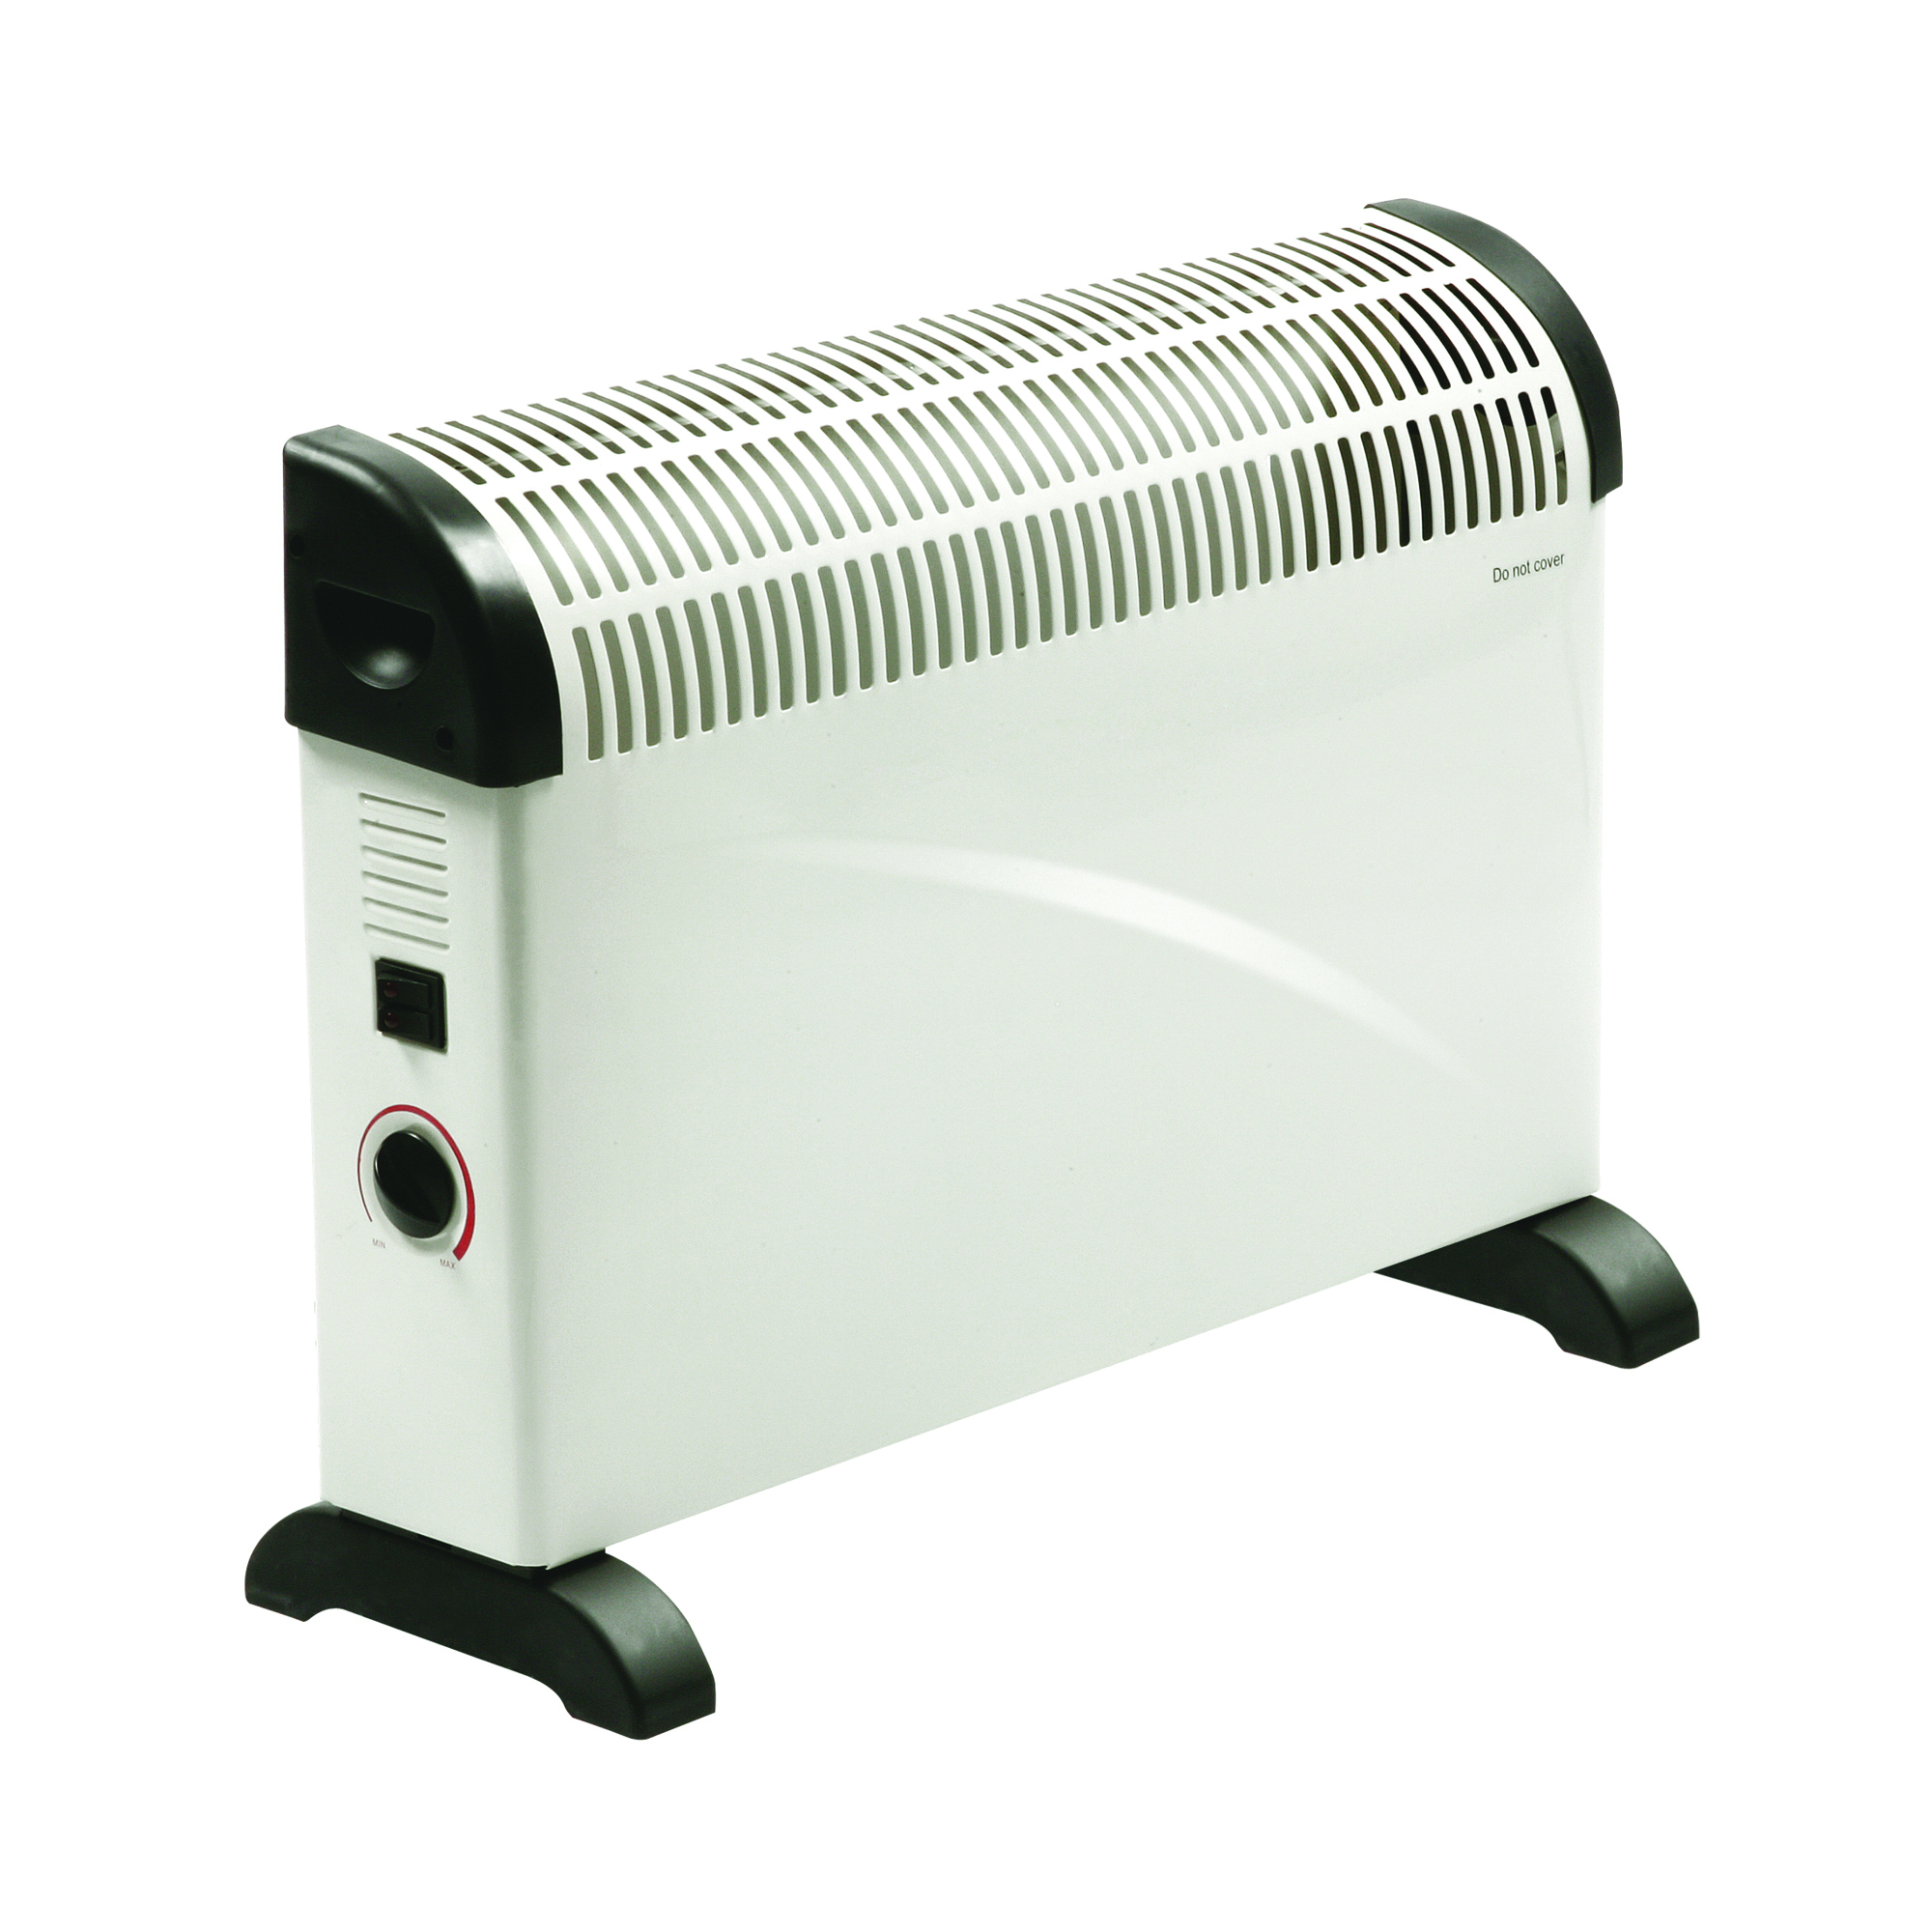 White and black Rhino convector heater with power and thermostat control dial on the side and plastic carry handles and feet